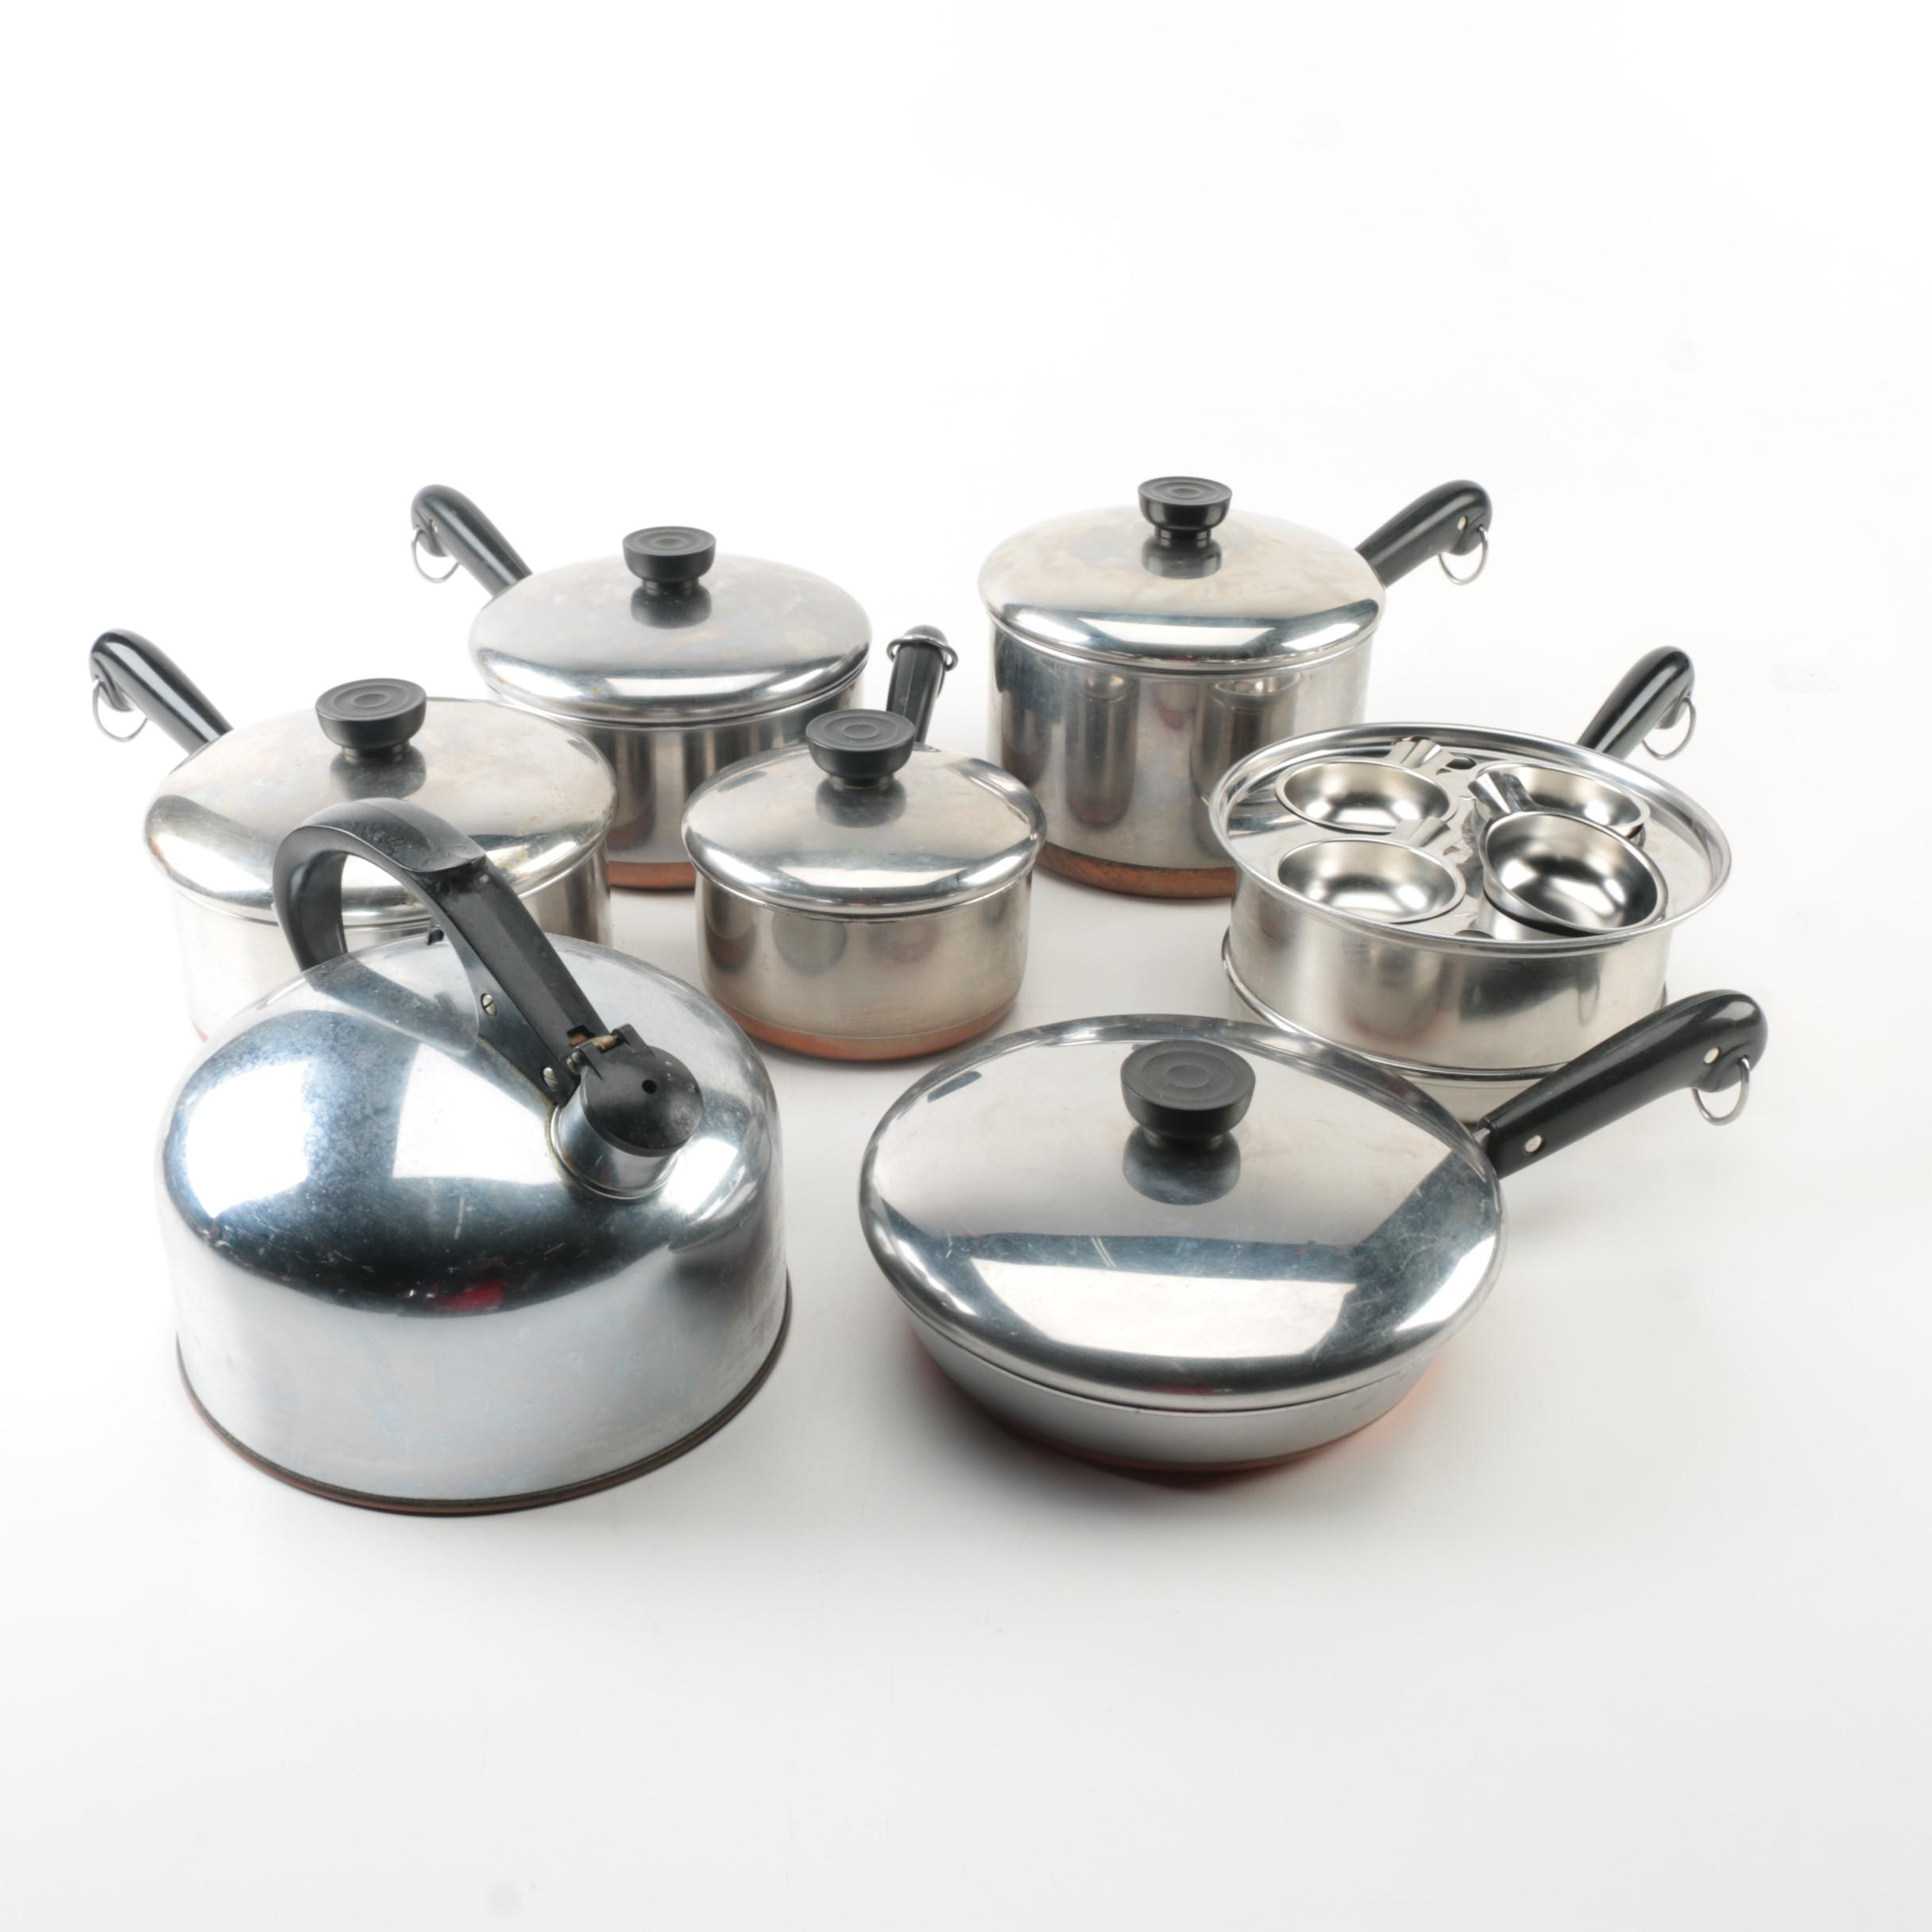 Revere Ware Cooking Set